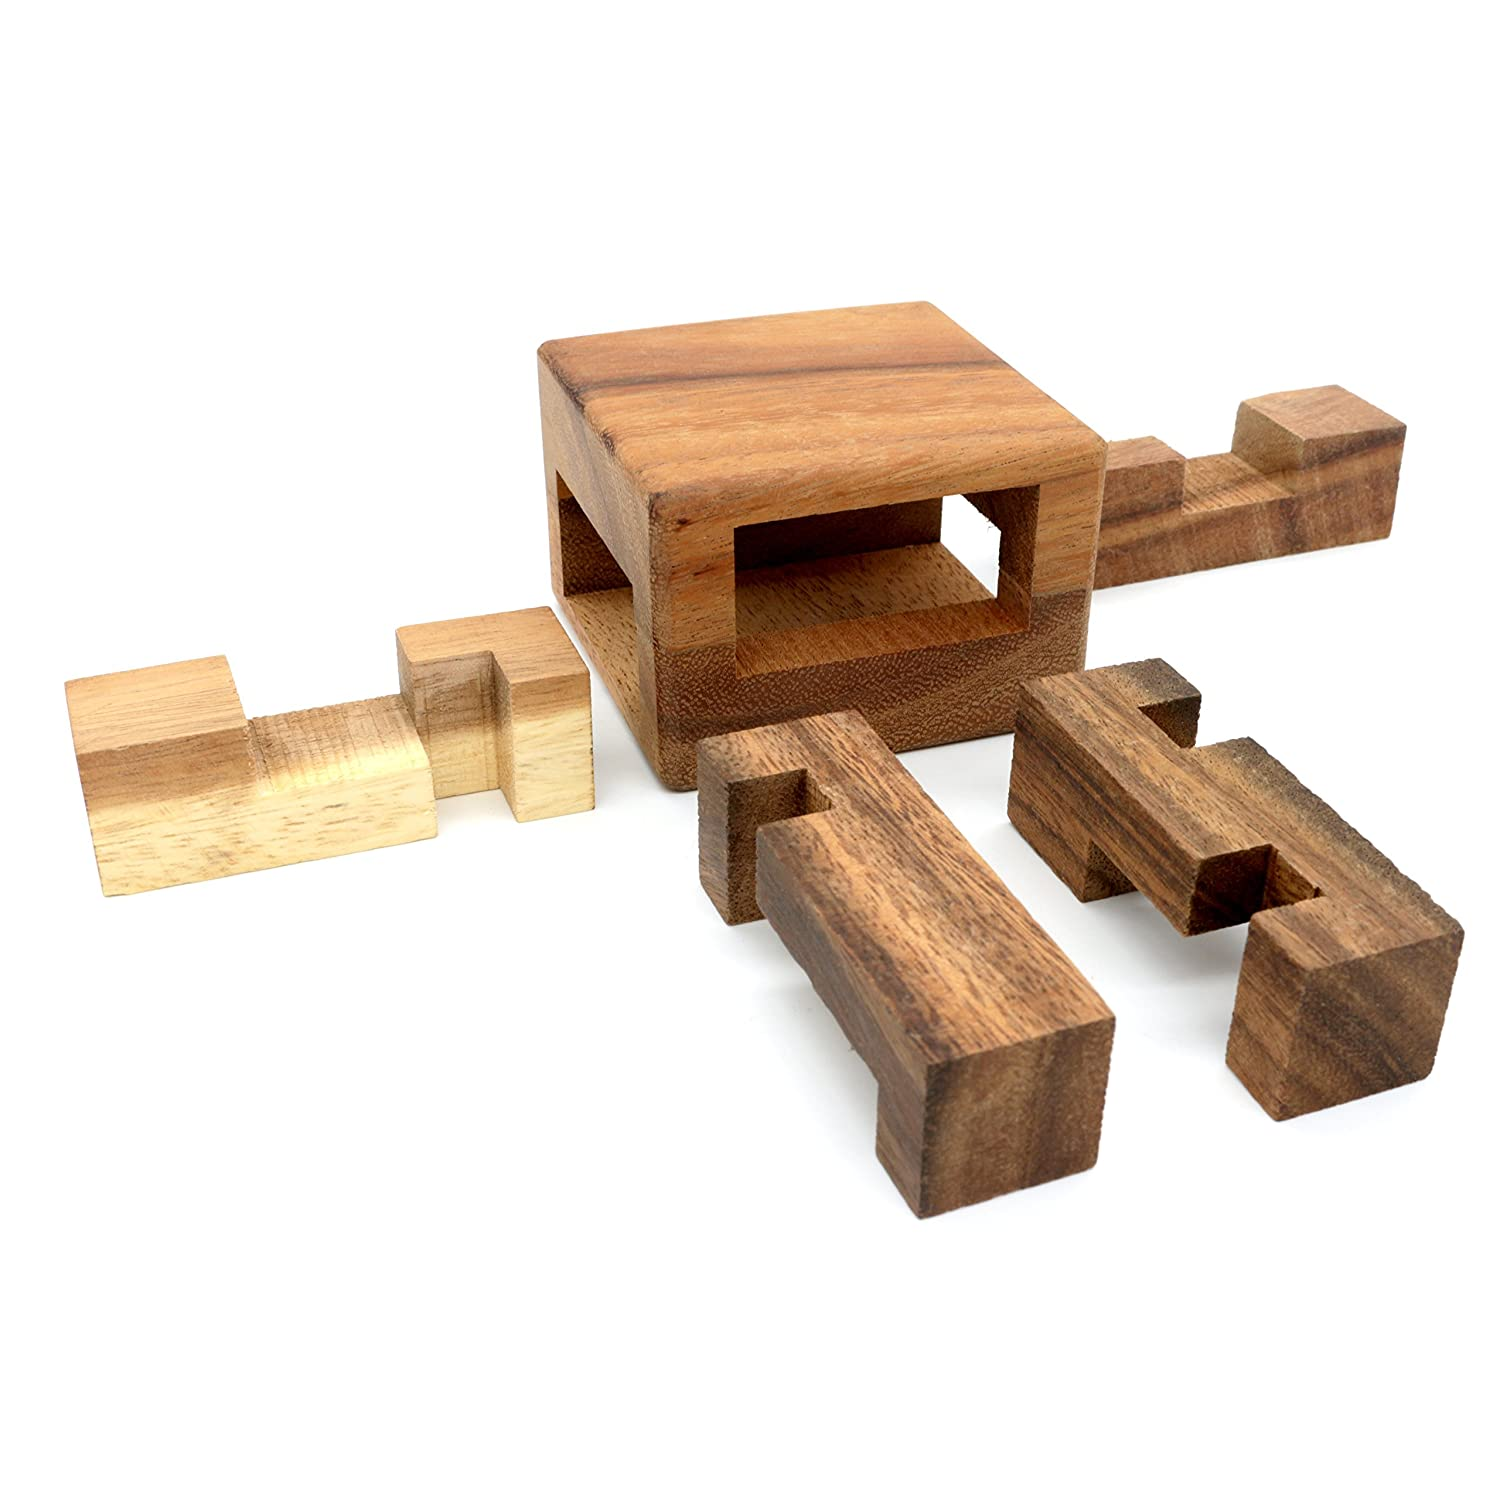 The Magic Drawers Wooden Puzzles for Adults 3D Brain Teasers Bsiri